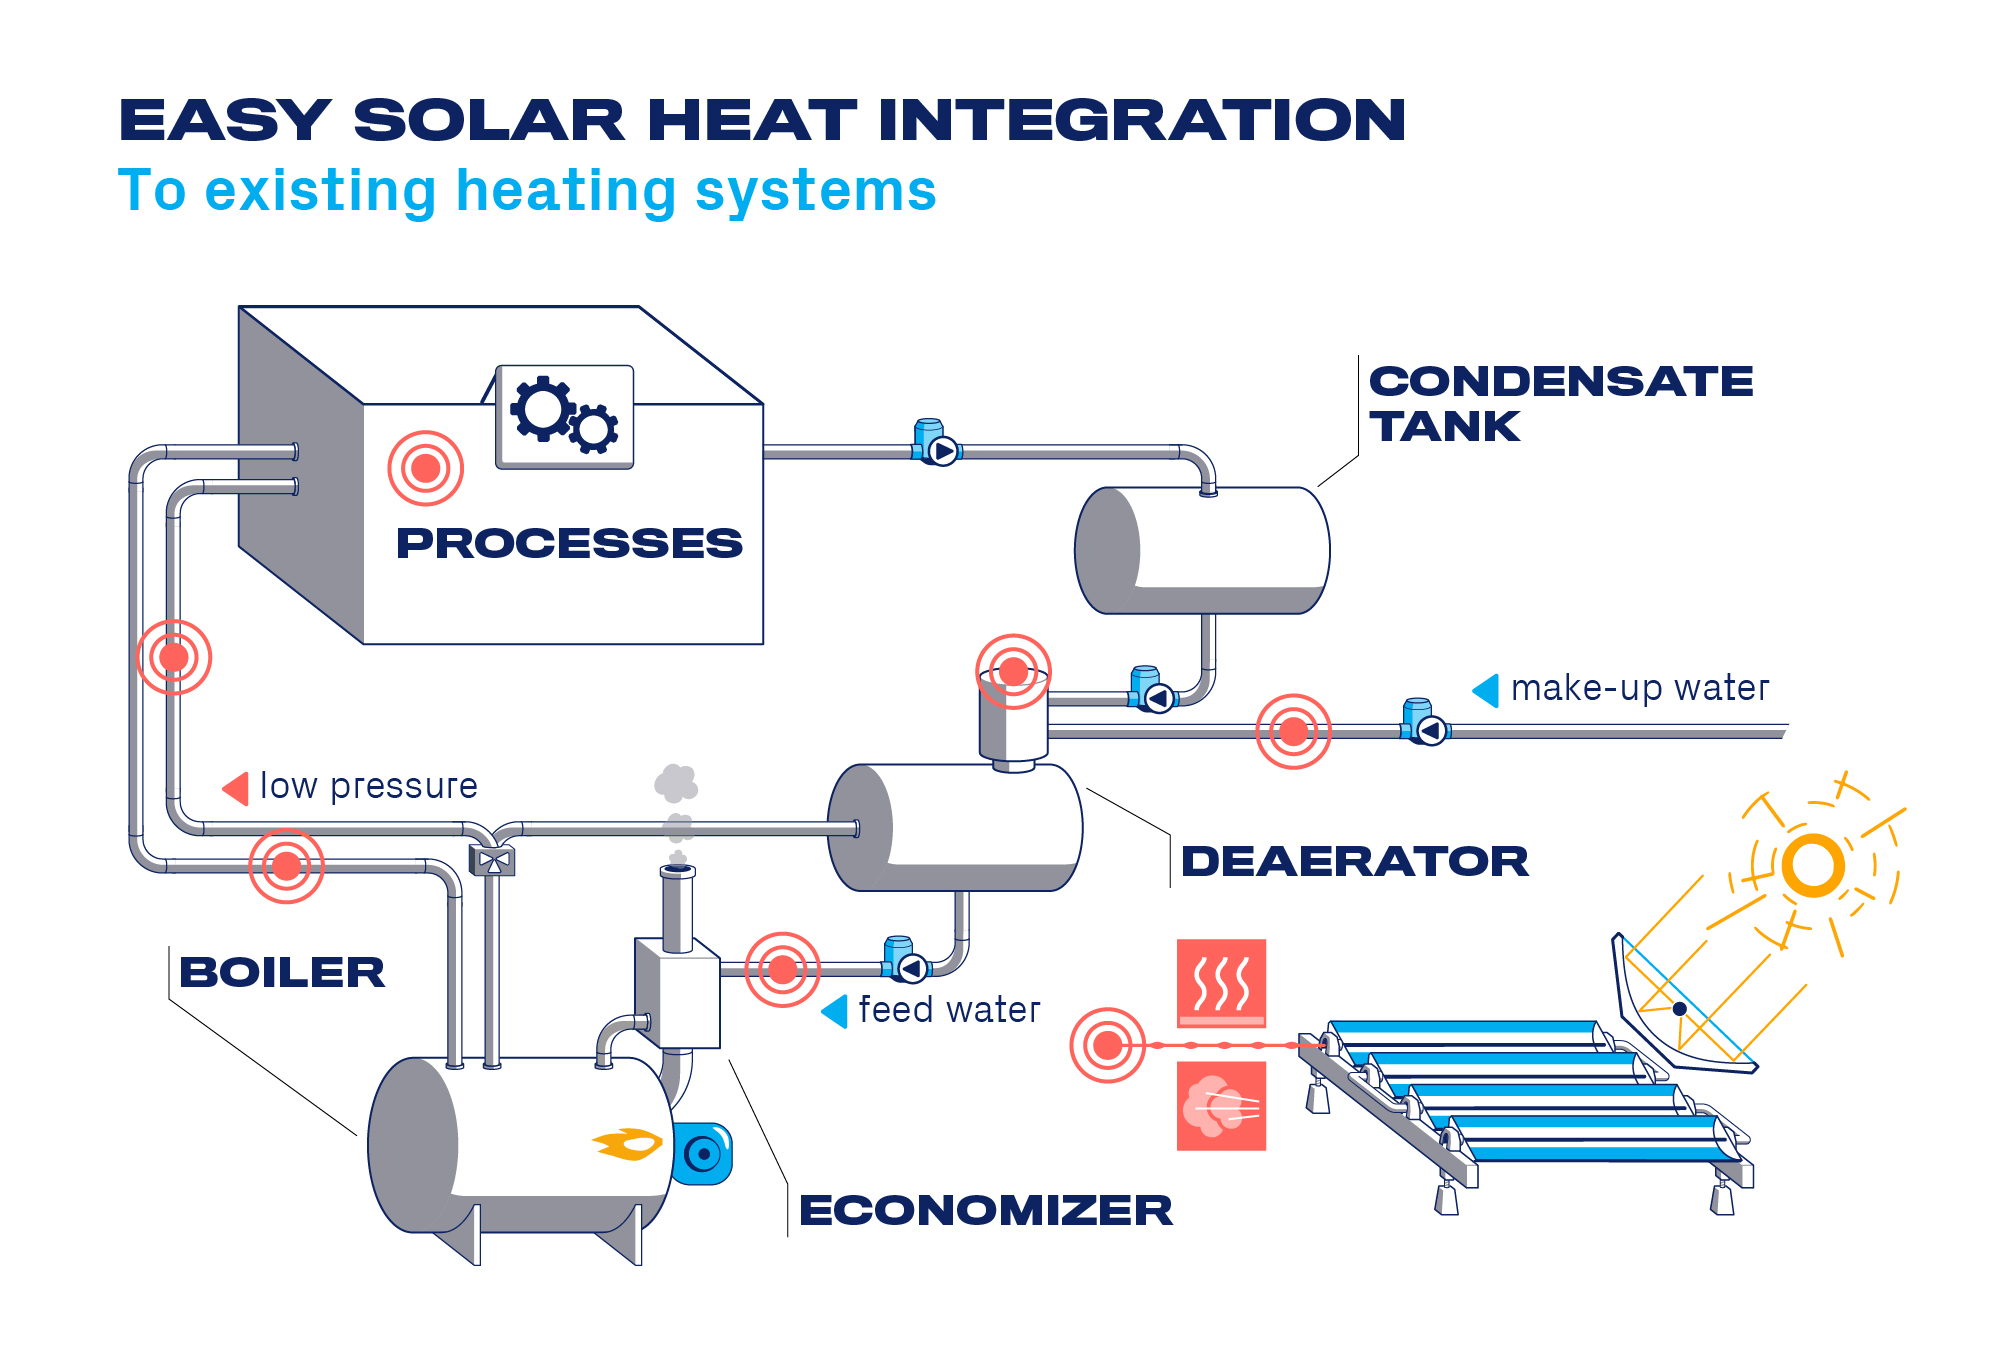 Solar collectors integration into existing systems